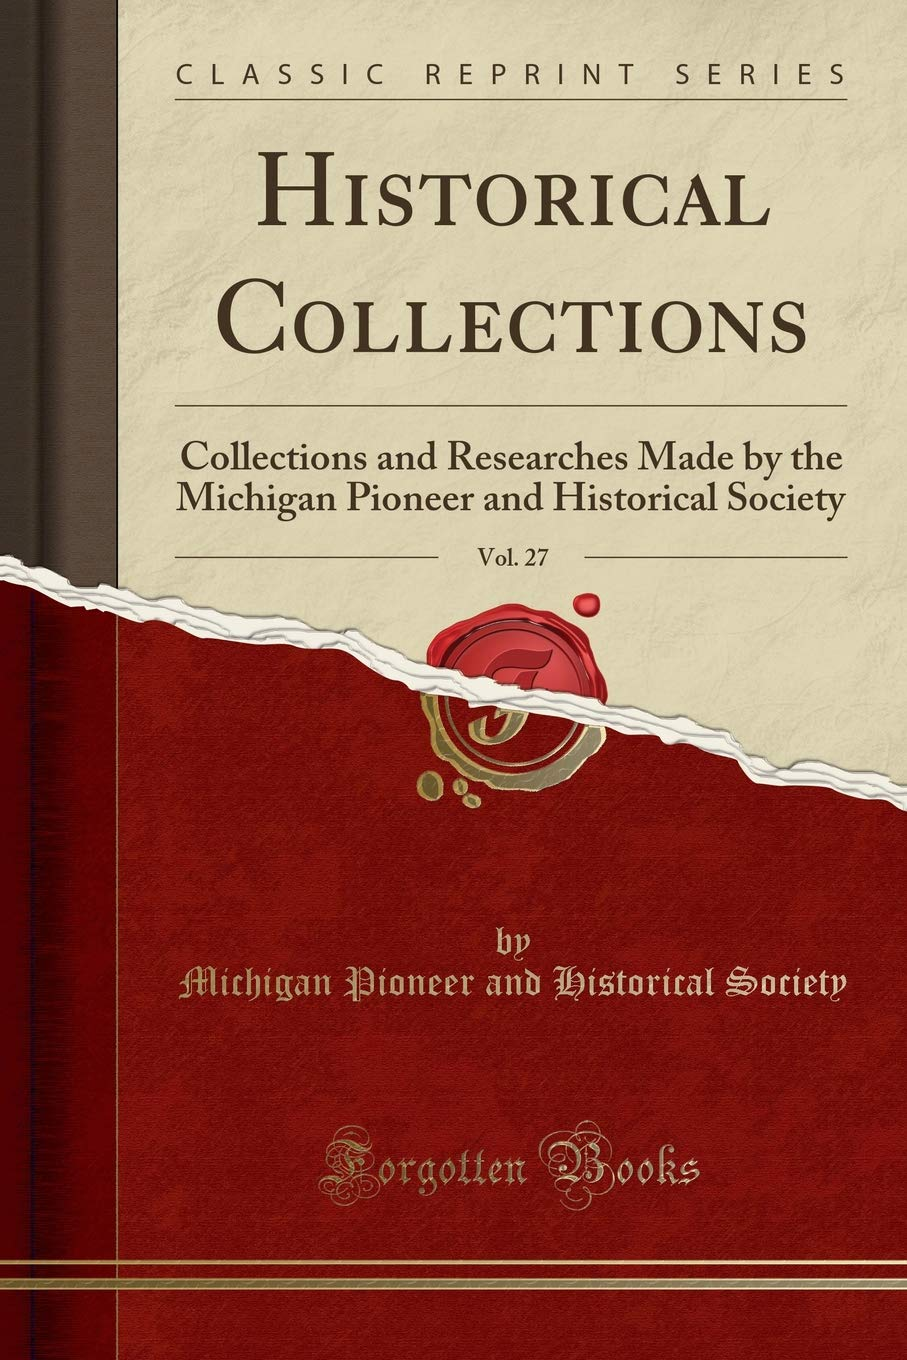 Historical Collections, Vol. 27: Collections and Researches Made by the Michigan Pioneer and Historical Society (Classic Reprint) ebook